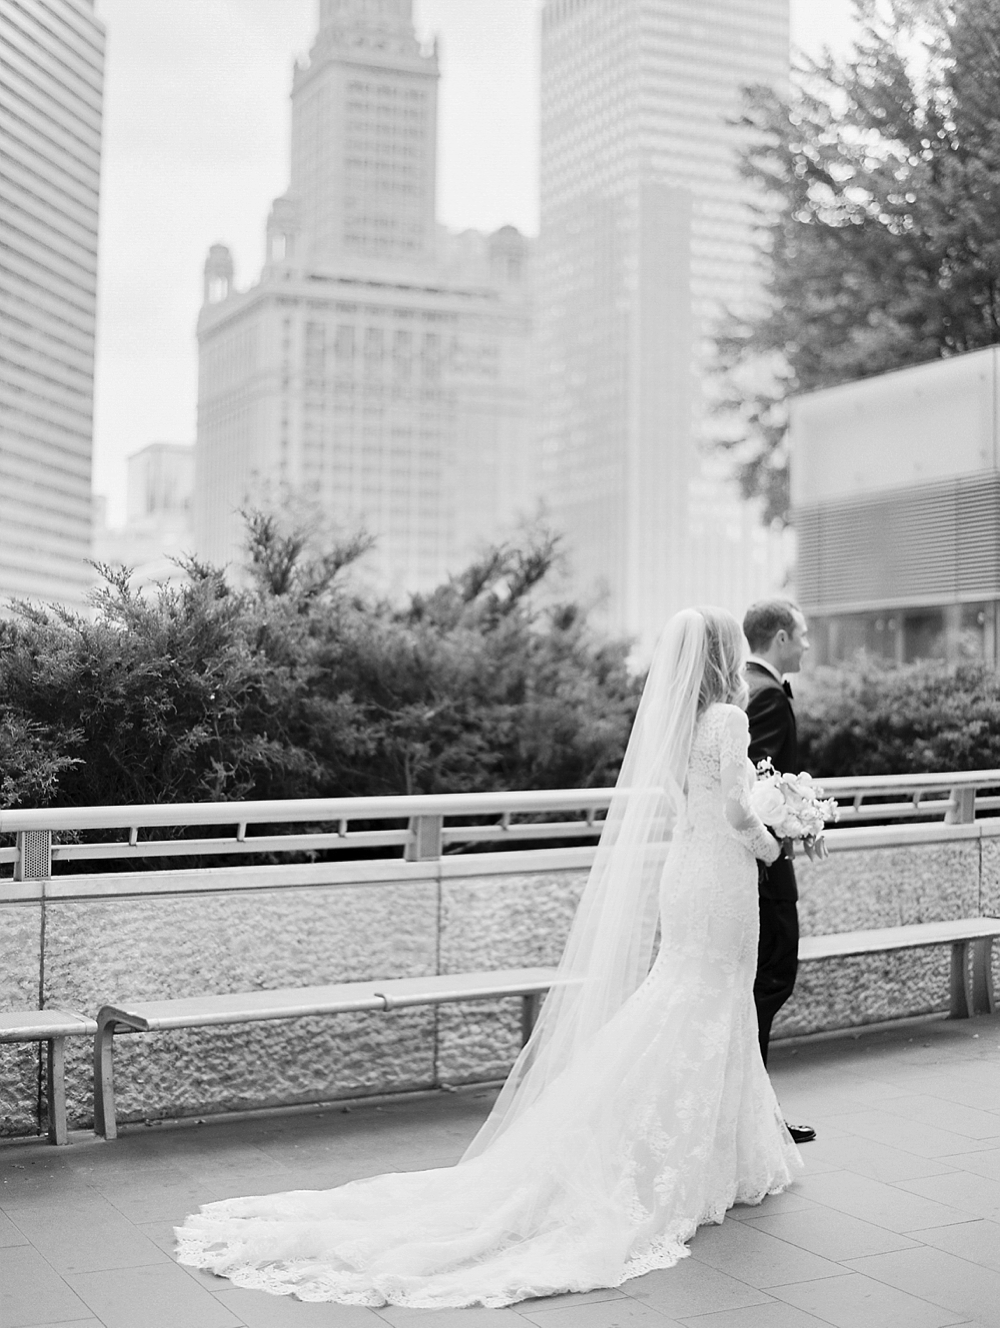 kristin-la-voie-photography-chicago-wedding-photographer-95